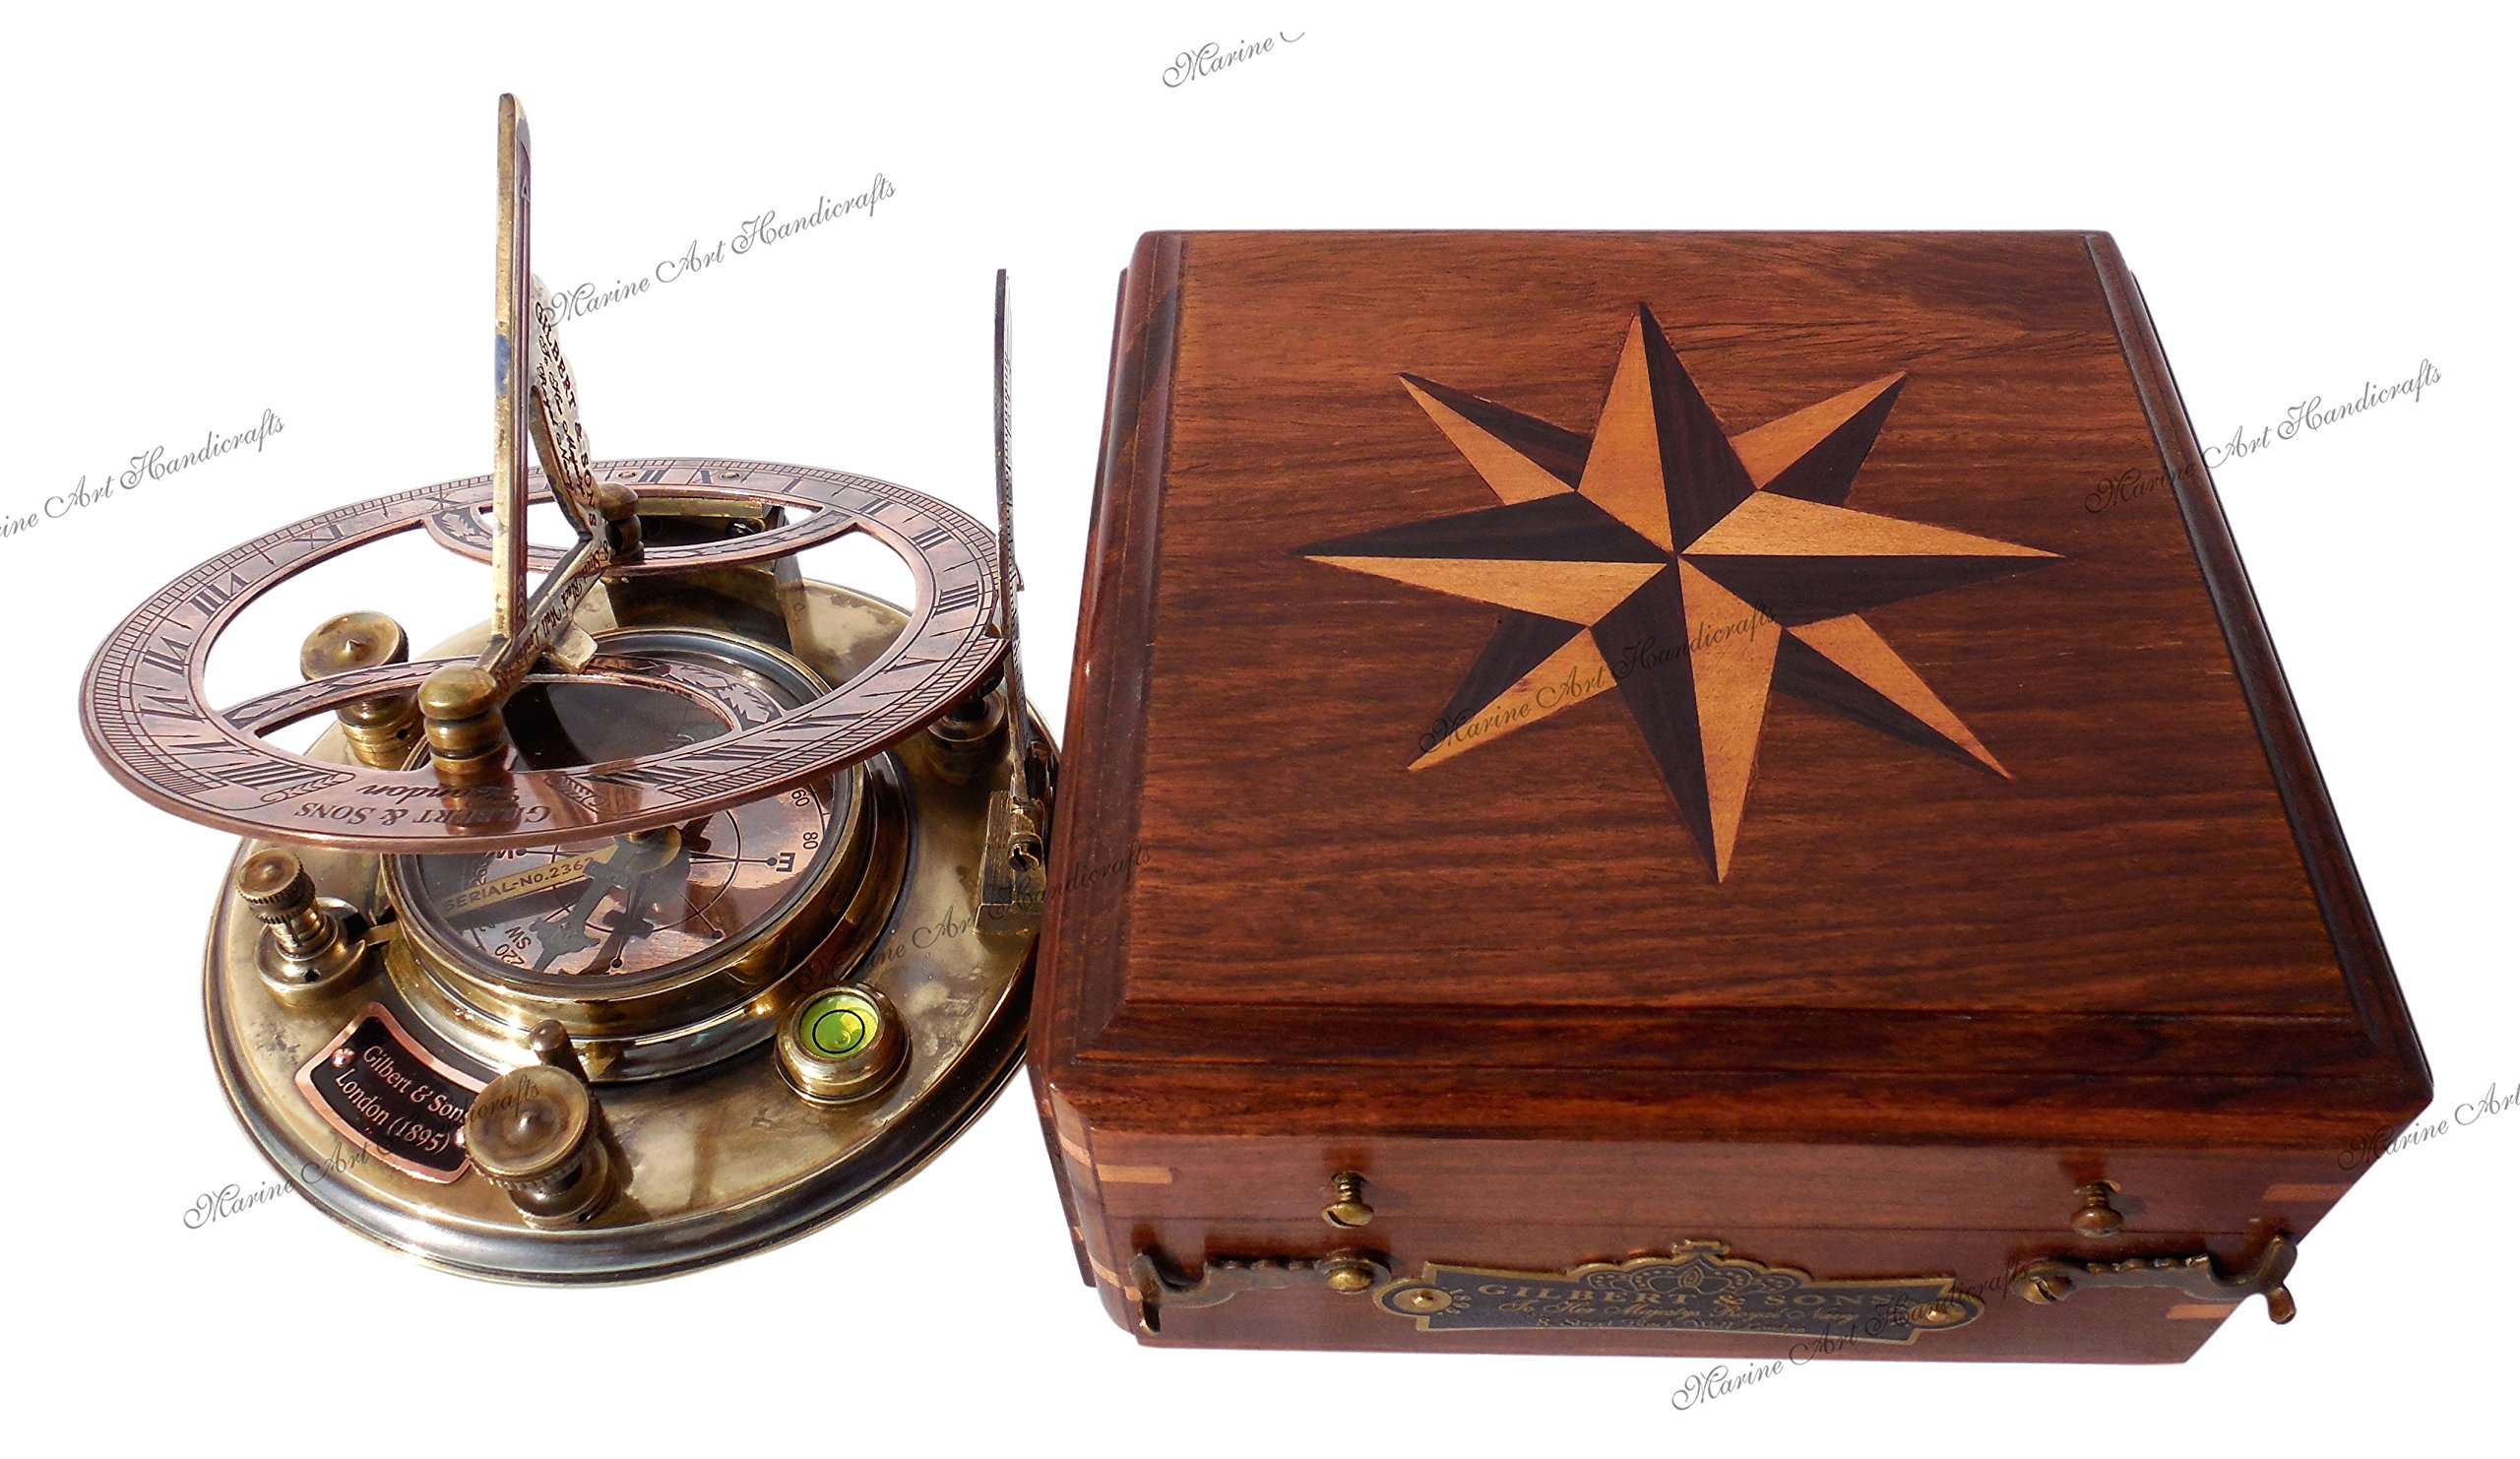 MAH Top Grade 5 Inch Perfectly Calibrated Large Sundial Compass Wooden Box. C-3050 by MAH